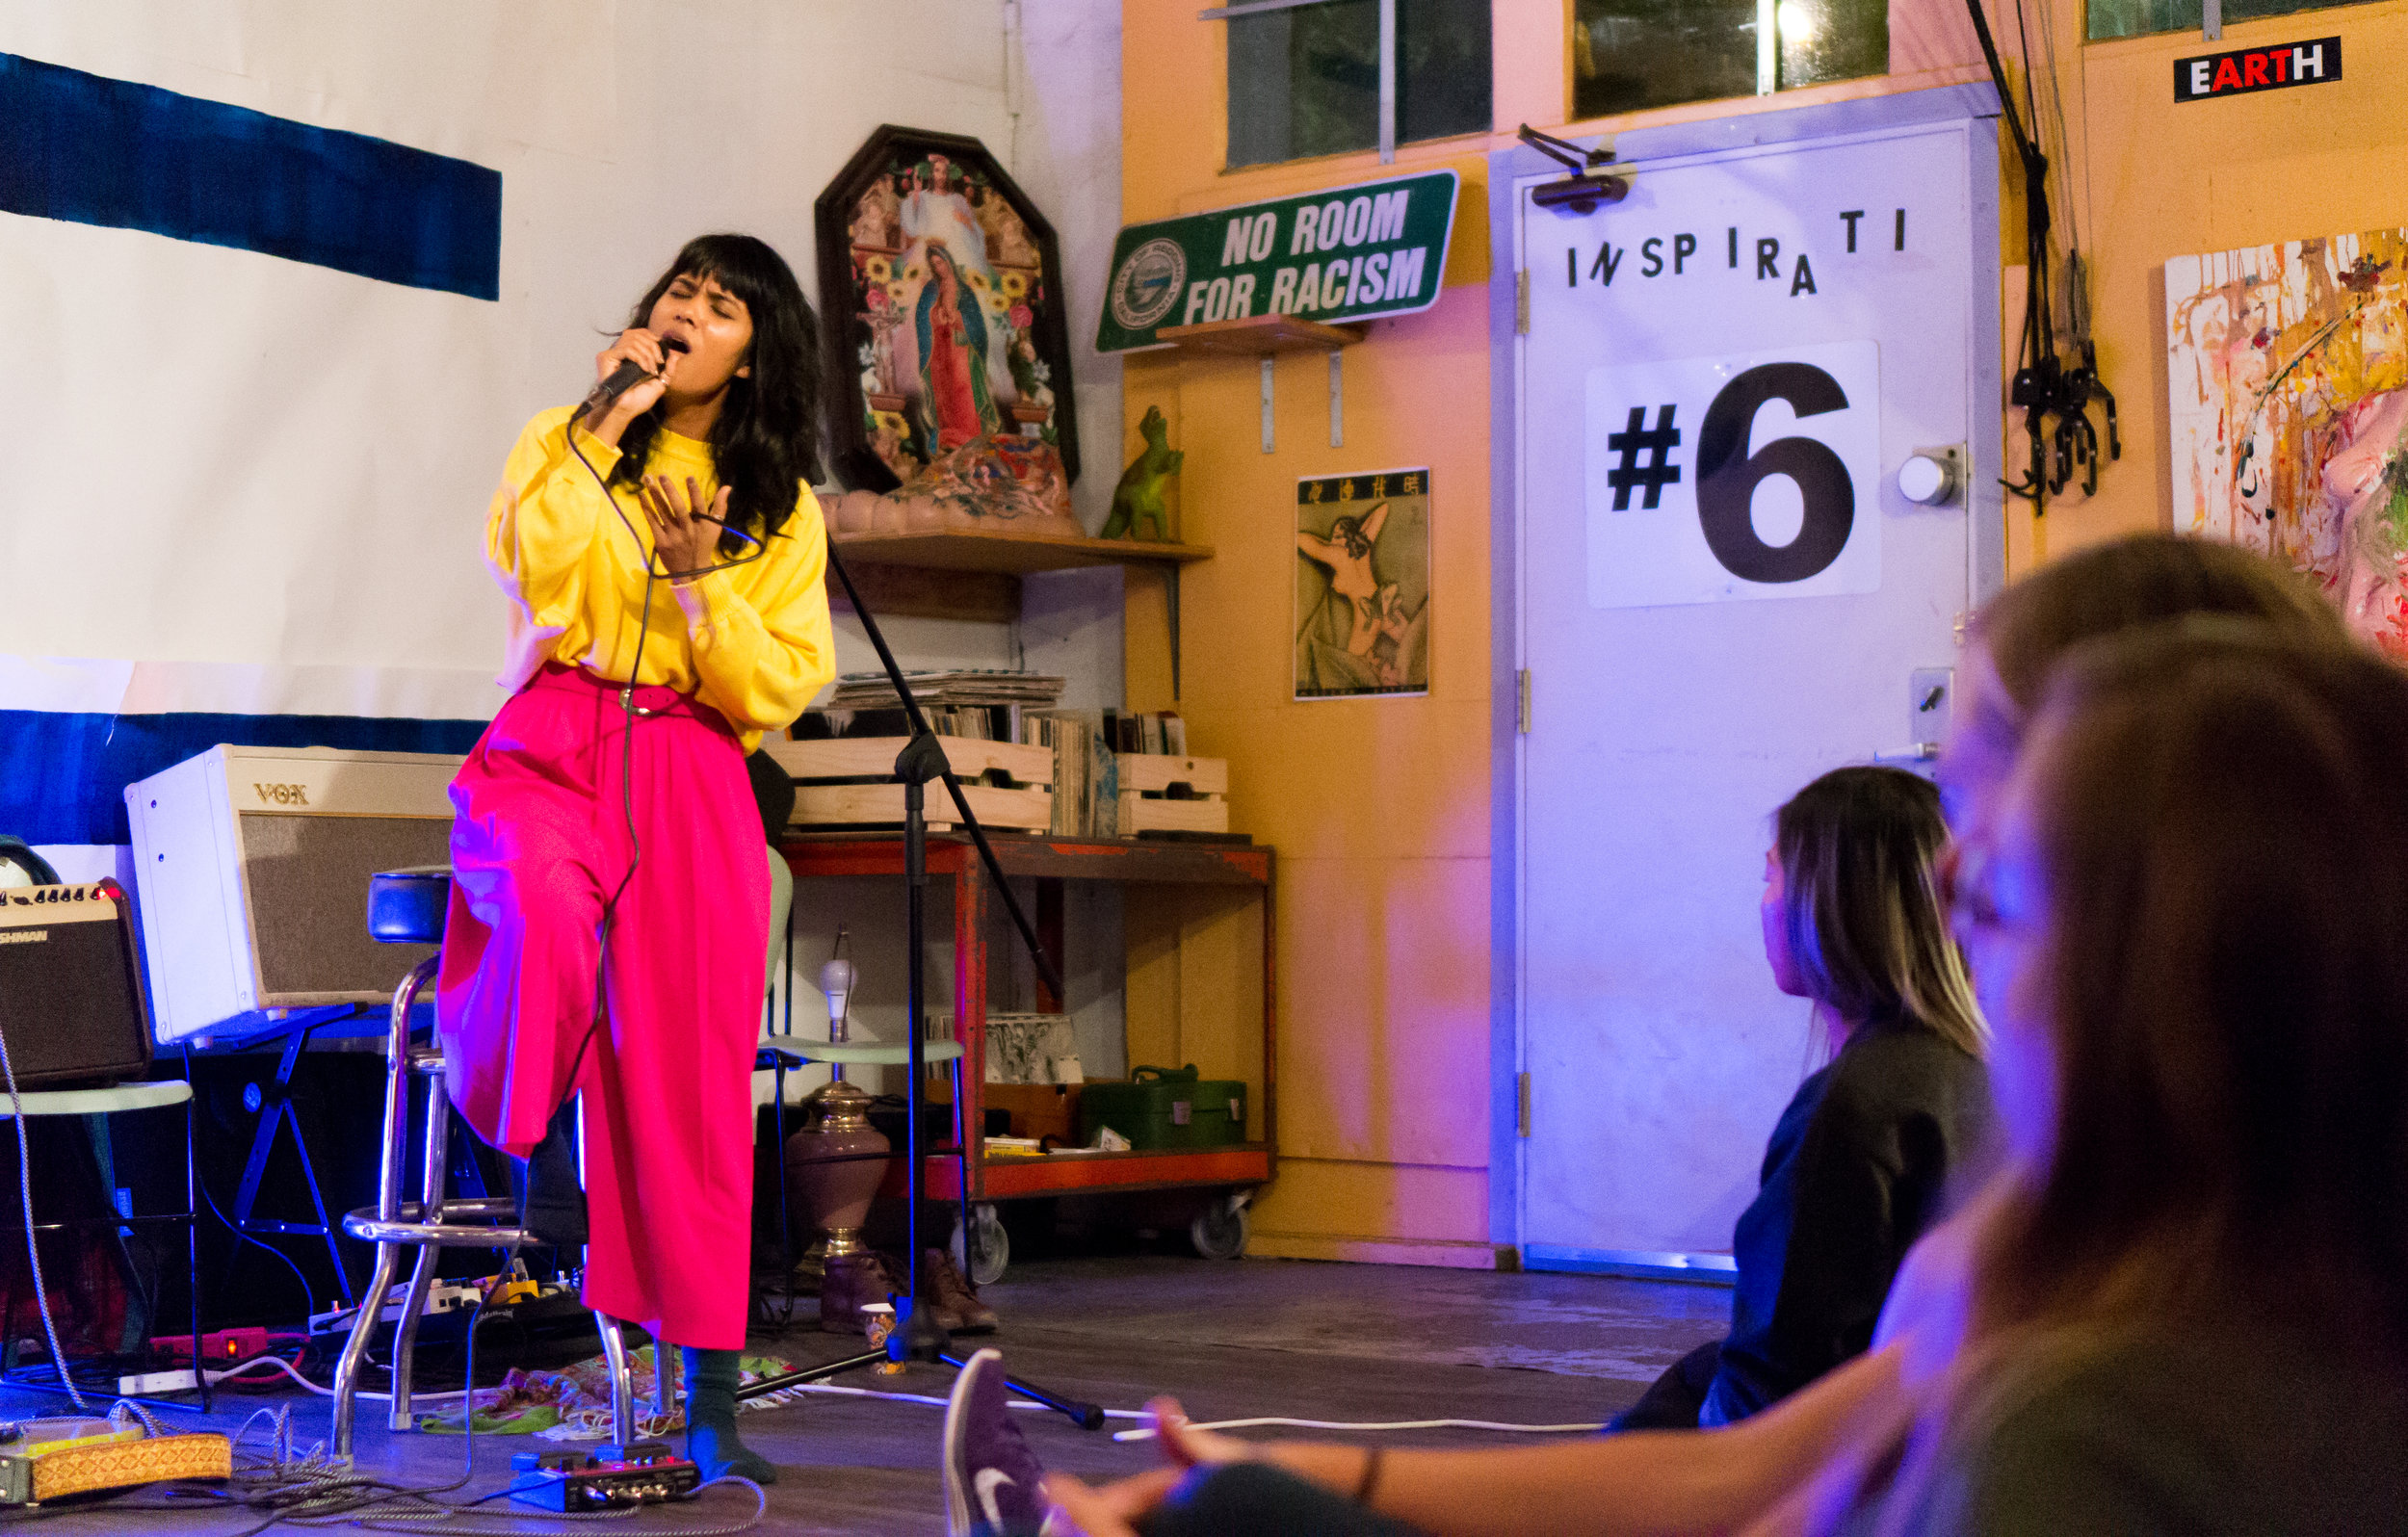 Sofar Sounds San Francisco